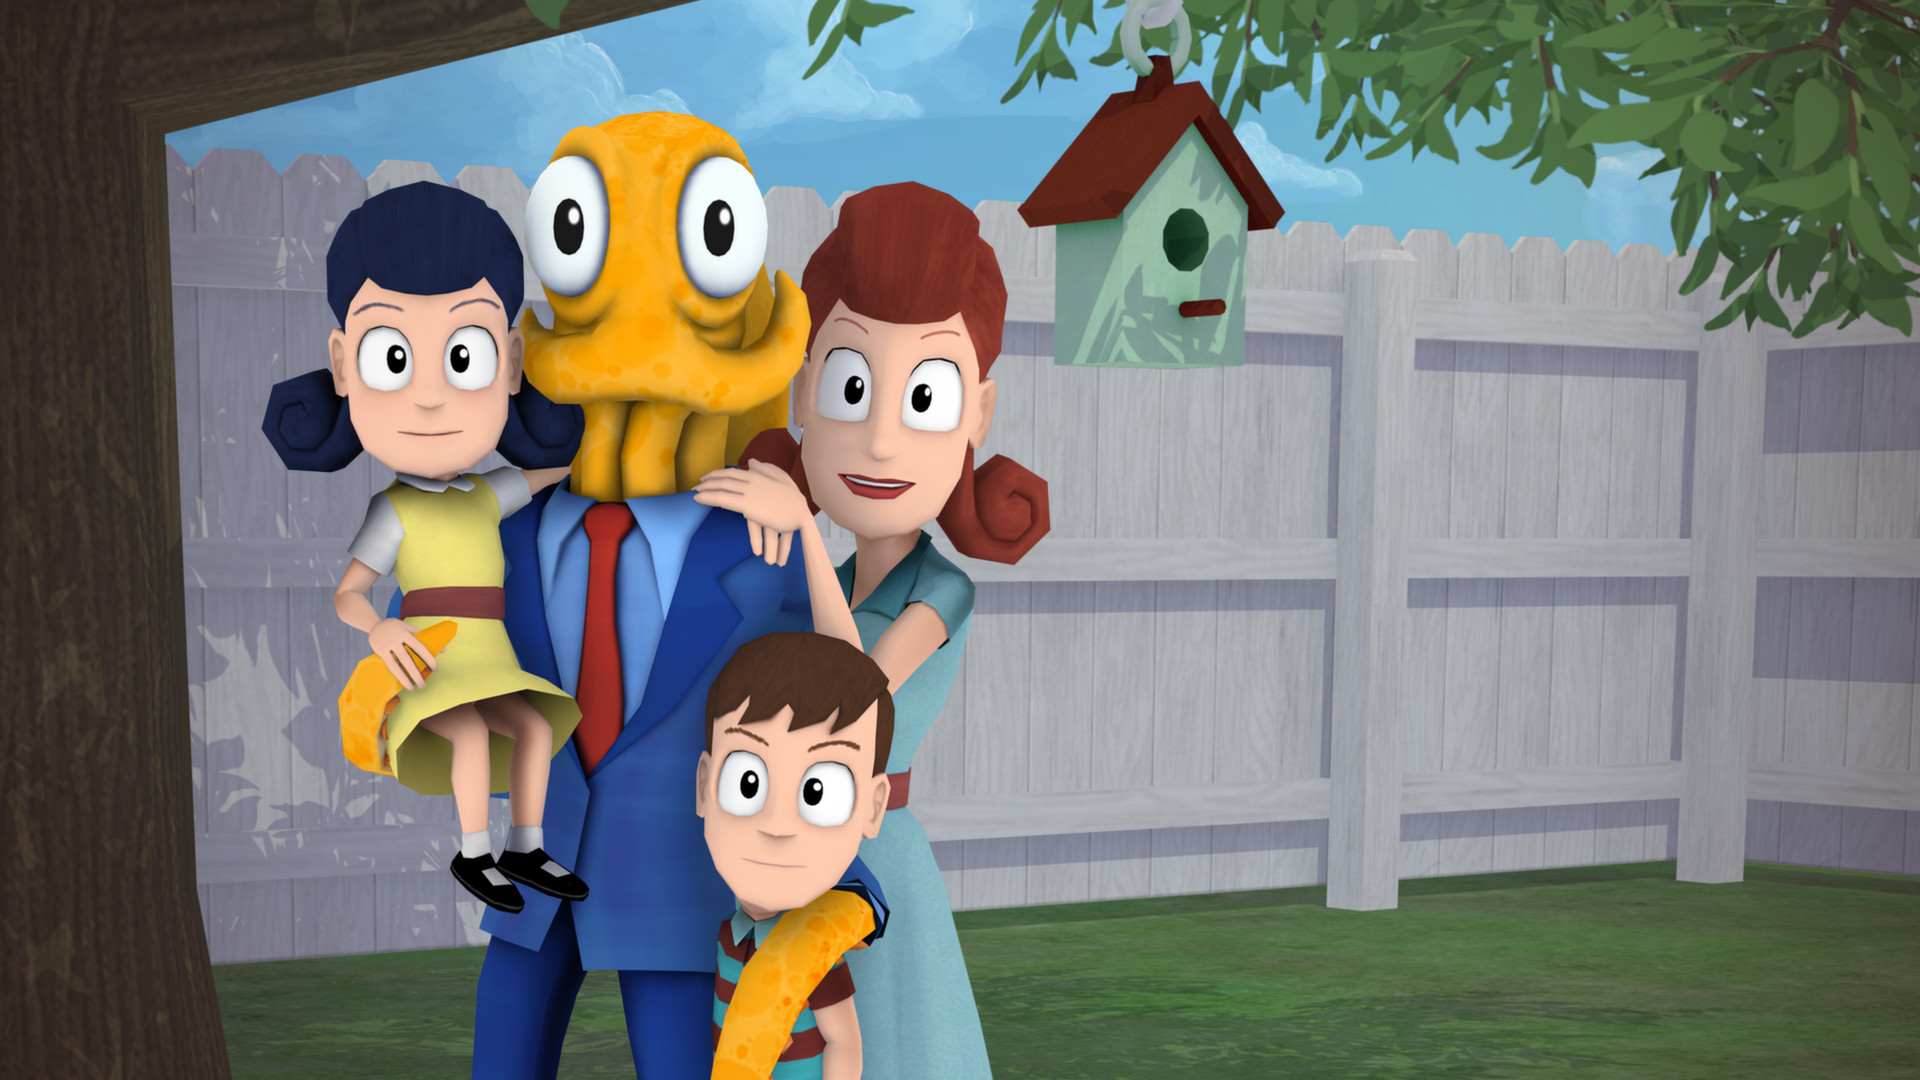 Octodad: Dadliest Catch (Steam ROW)